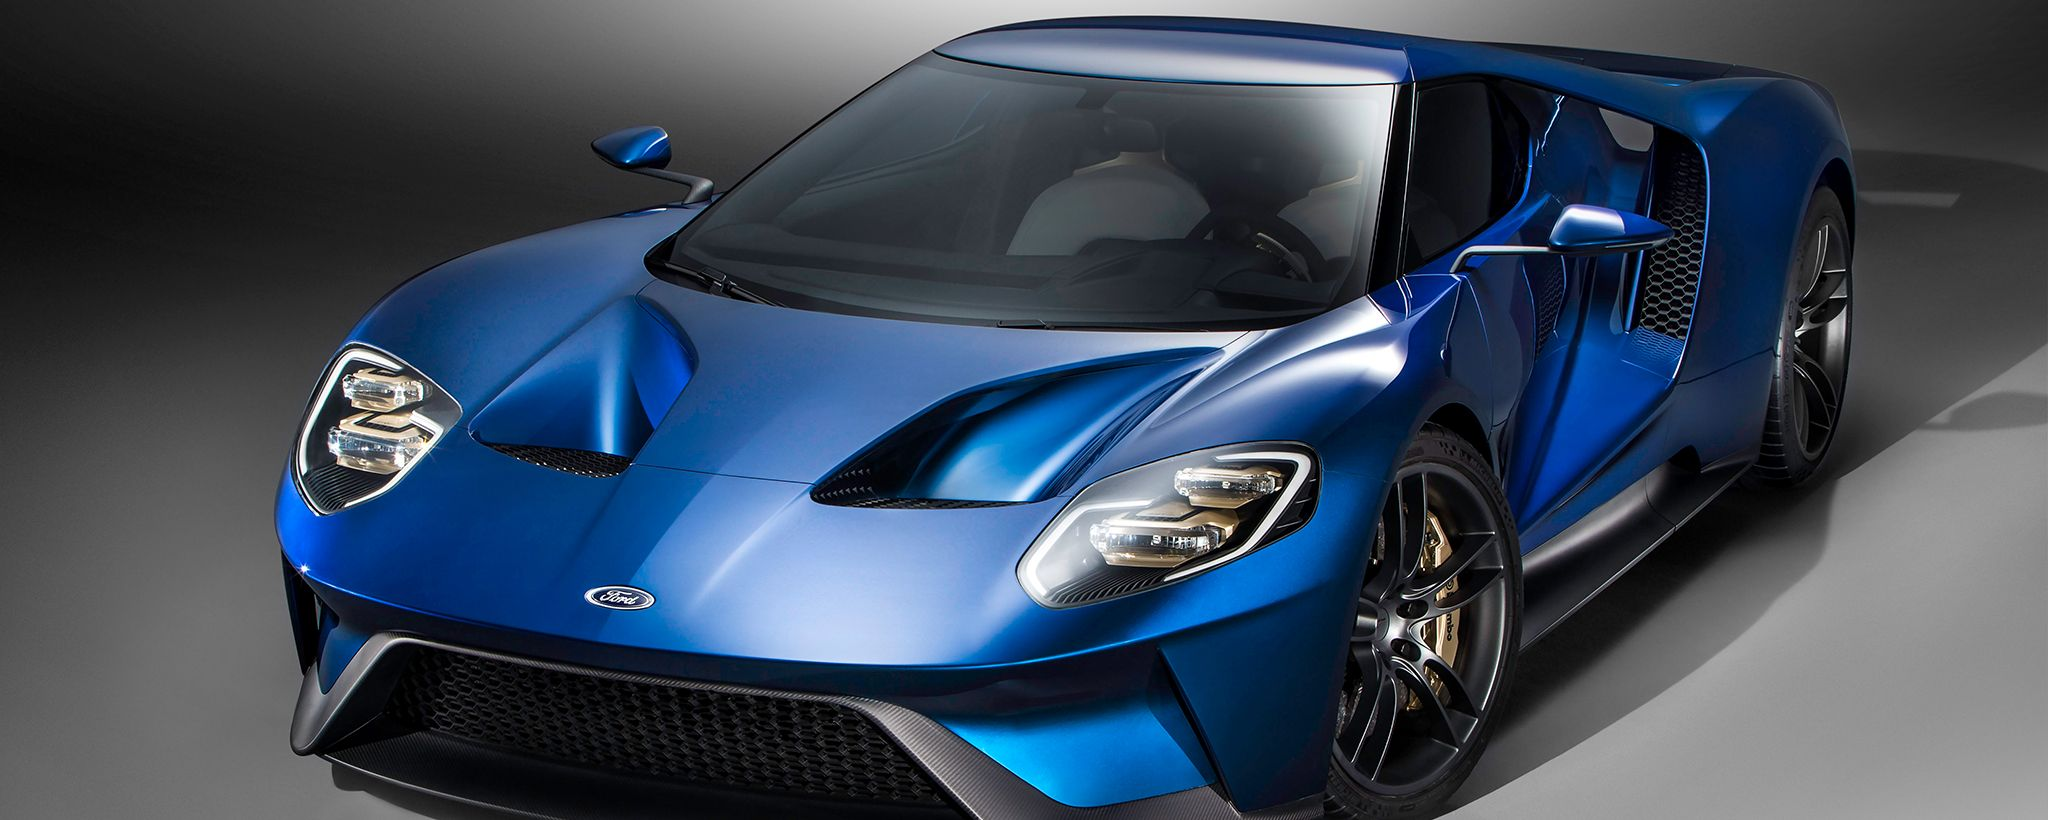 Gorilla Glass For Automotive Windshield Glass Ford Gt Emerging